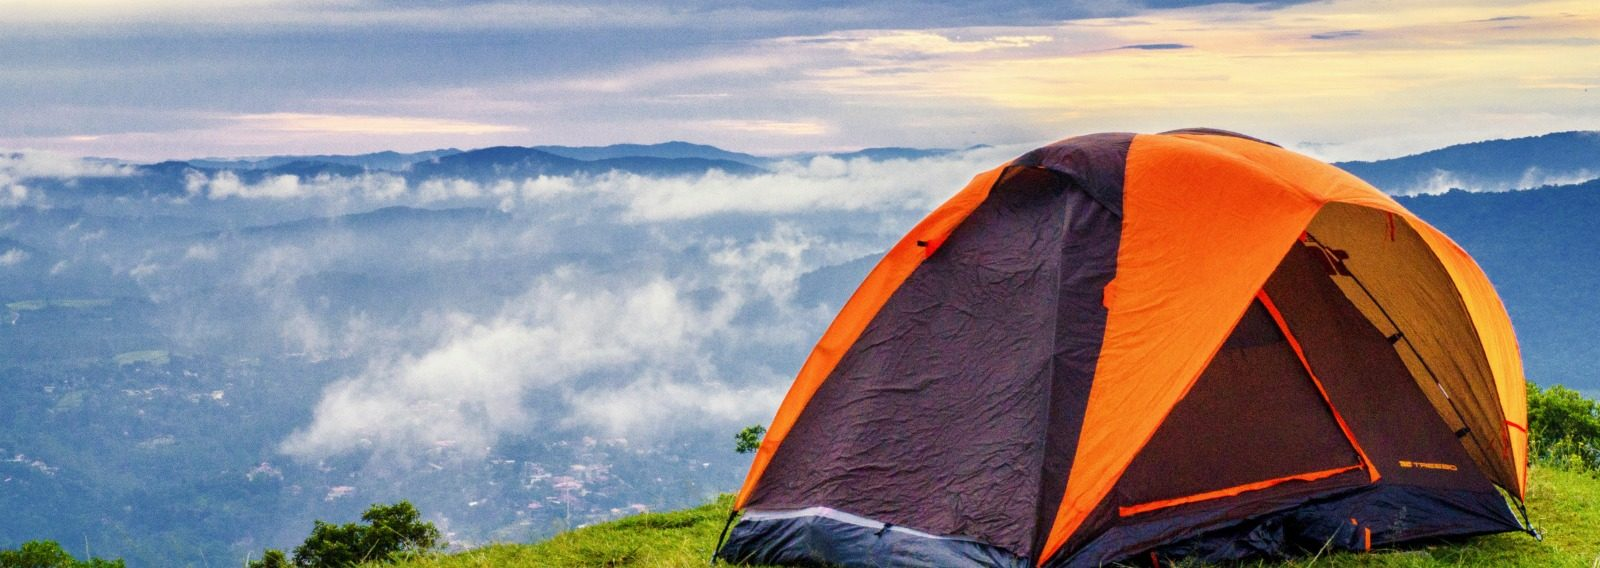 Get camping tips from the family vacation experts at TravelingMom.com